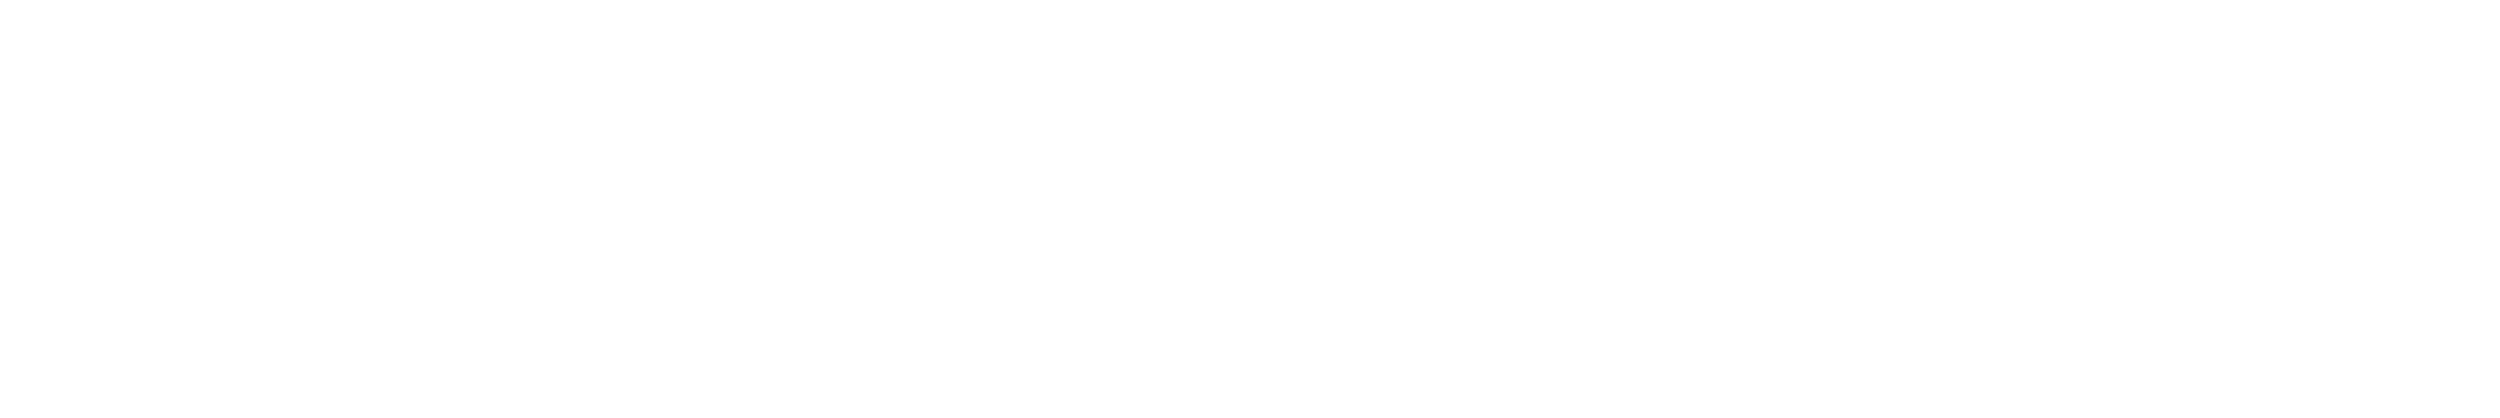 Wale Title v2.png